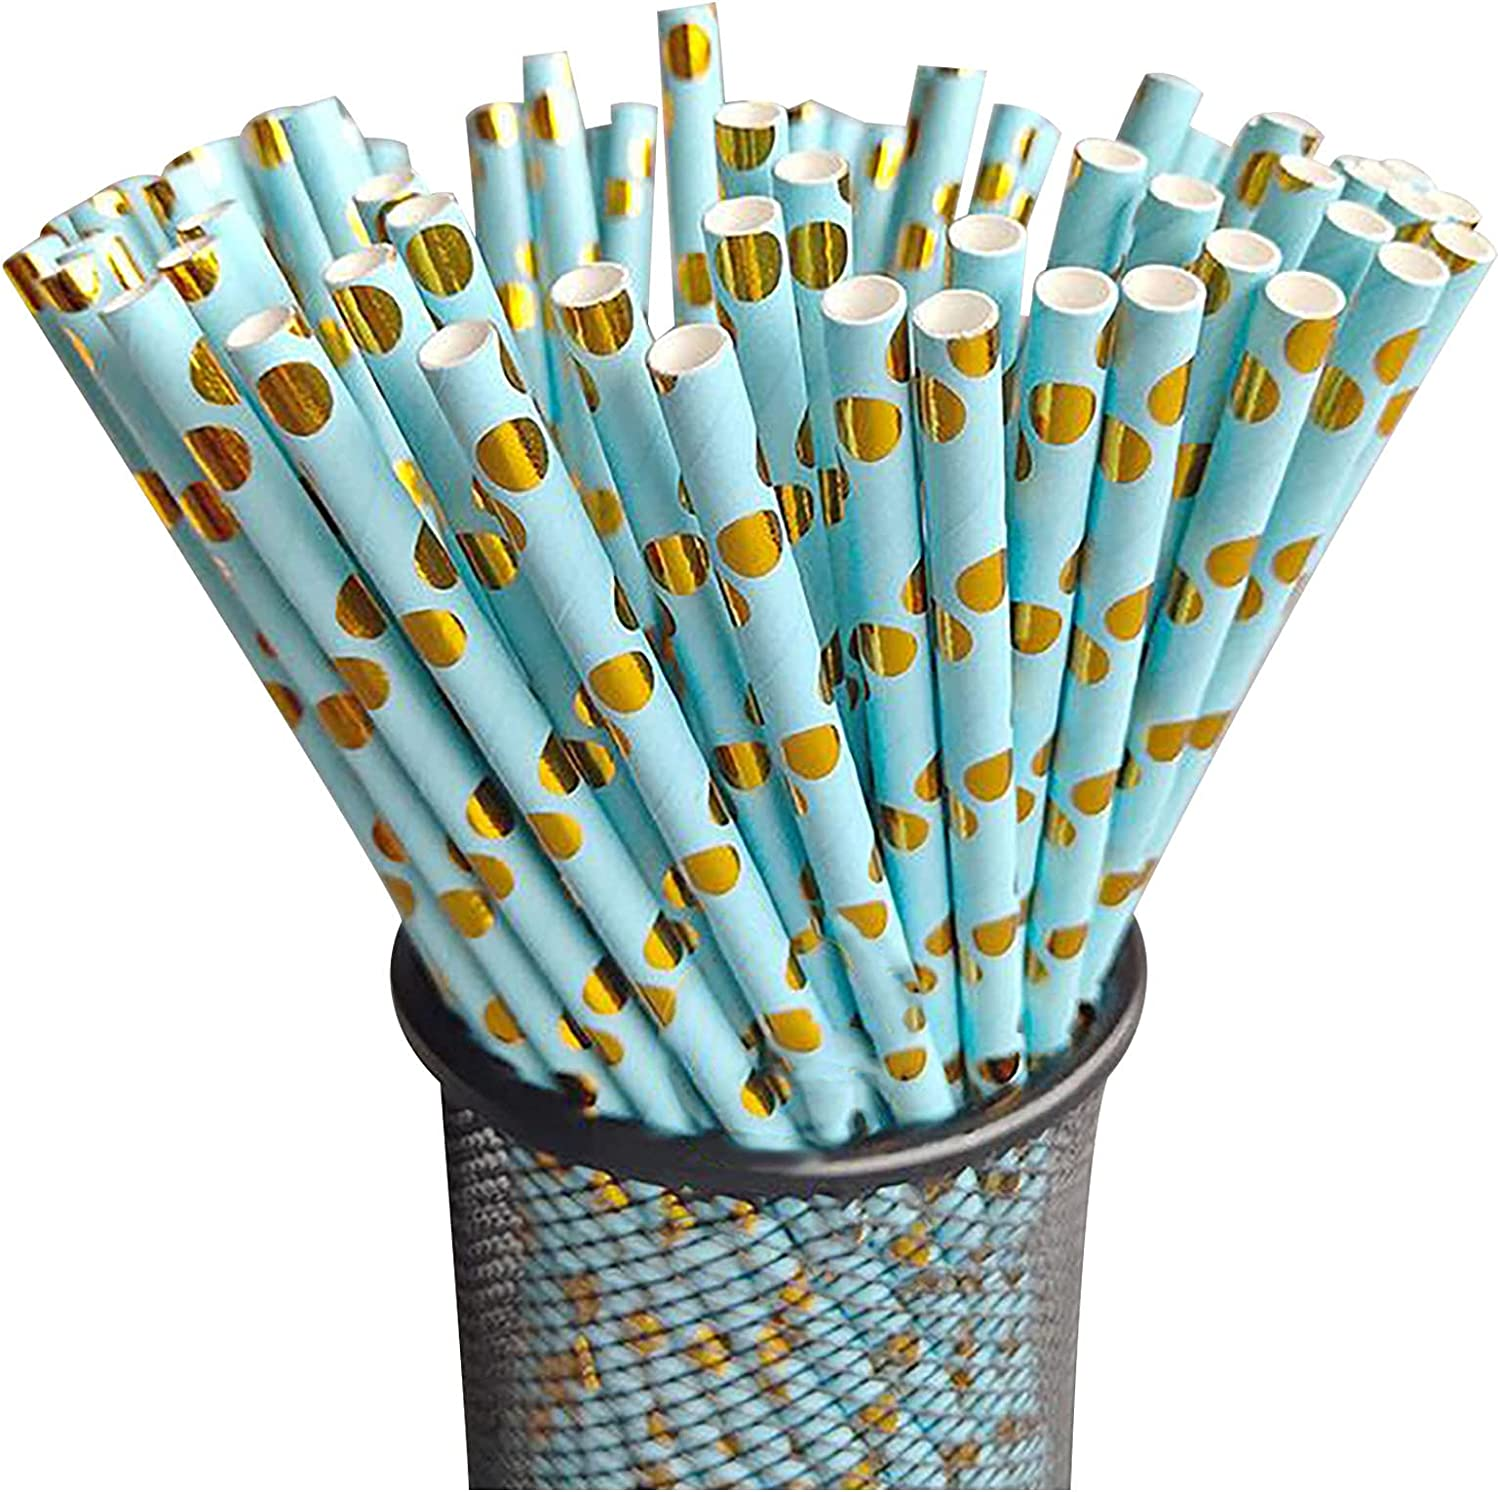 [100 Pack] Paper Straws Gold Coated, Biodegradable Paper Drinking Straw for Both Hot and Cold Beverages, 7.67